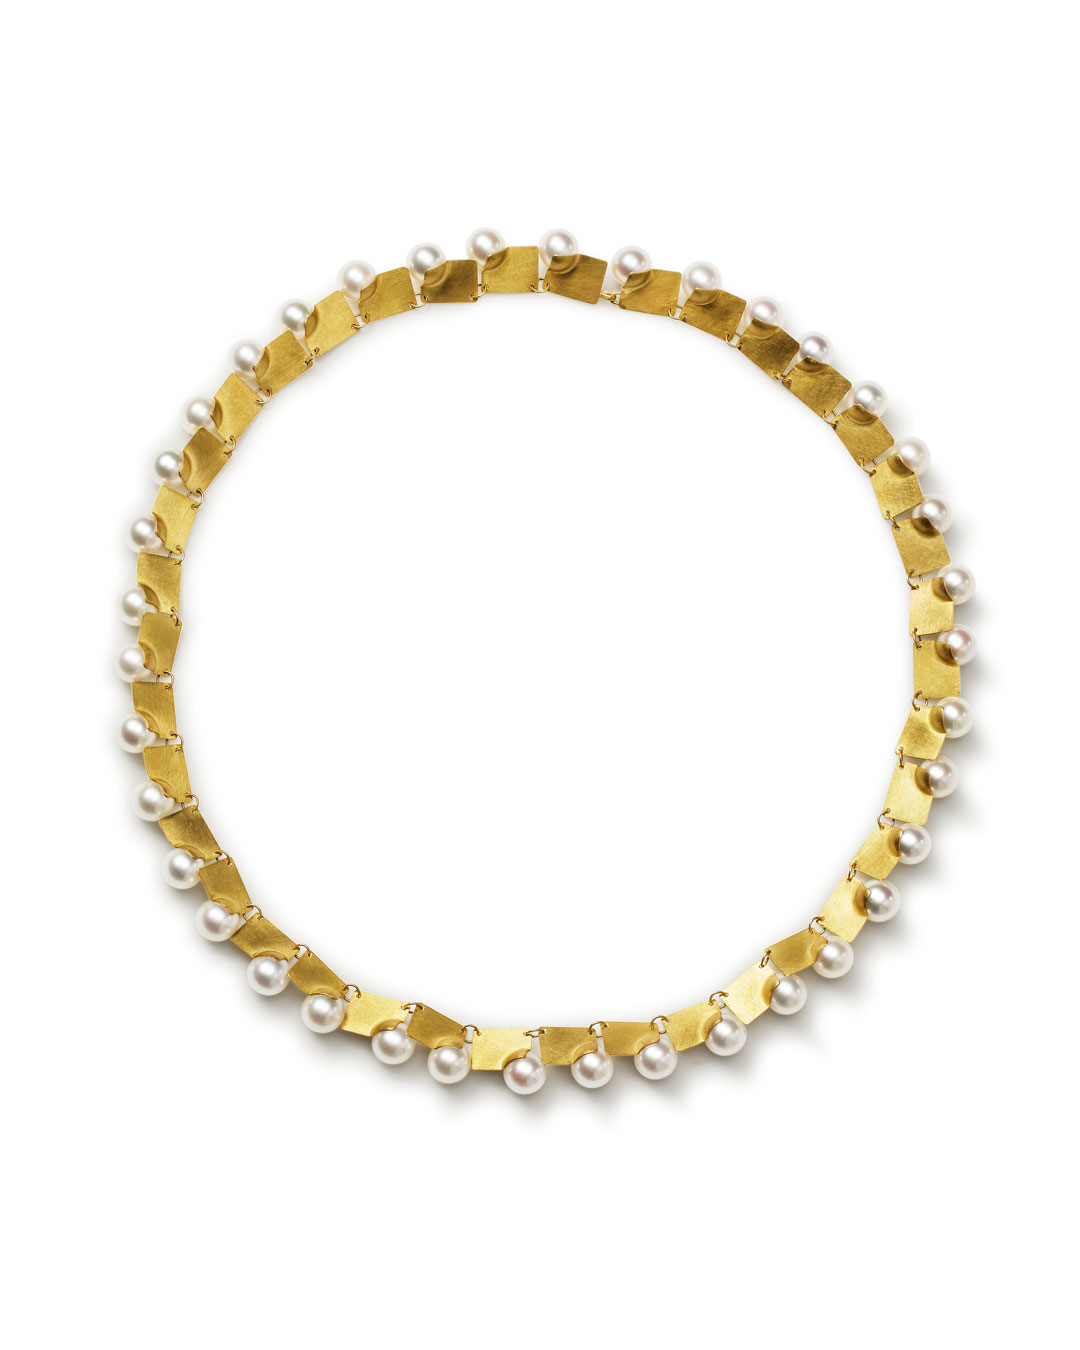 Etsuko Sonobe, untitled, 2013, necklace; 20ct gold, pearls, 520 x 12 x 7 mm, €5900